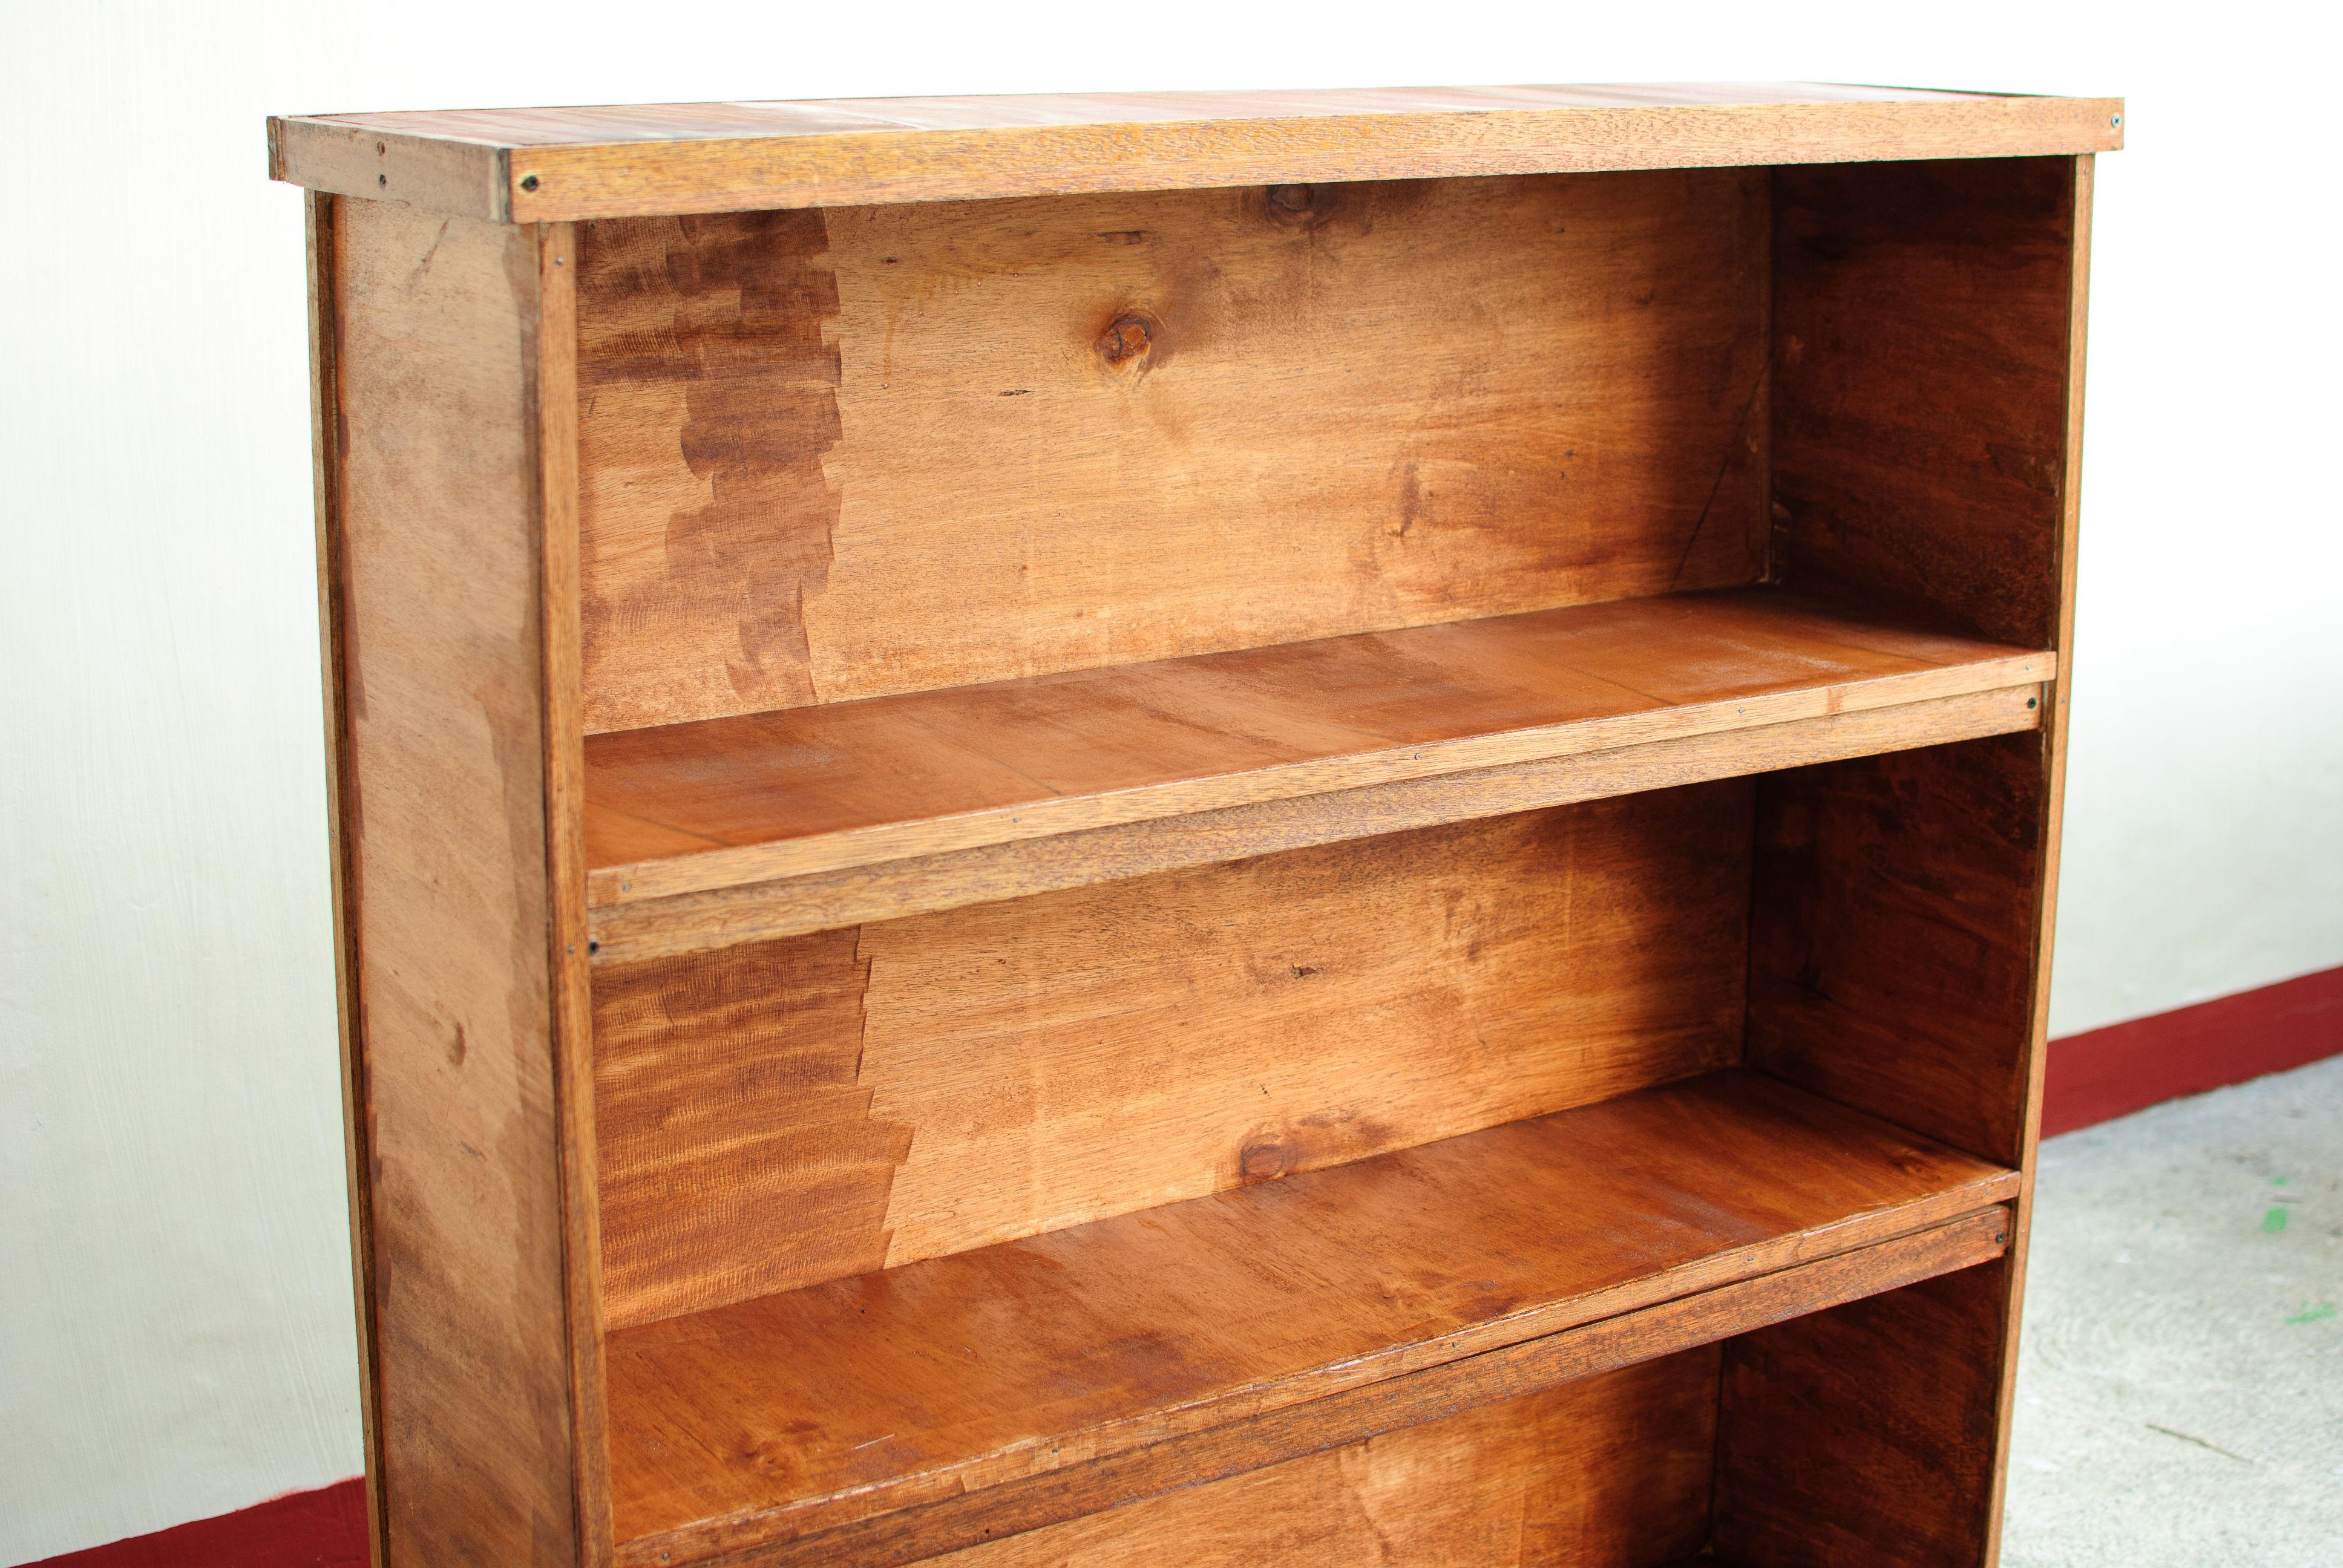 Build Wooden Bookshelves With Images Diy Decor Projects Diy